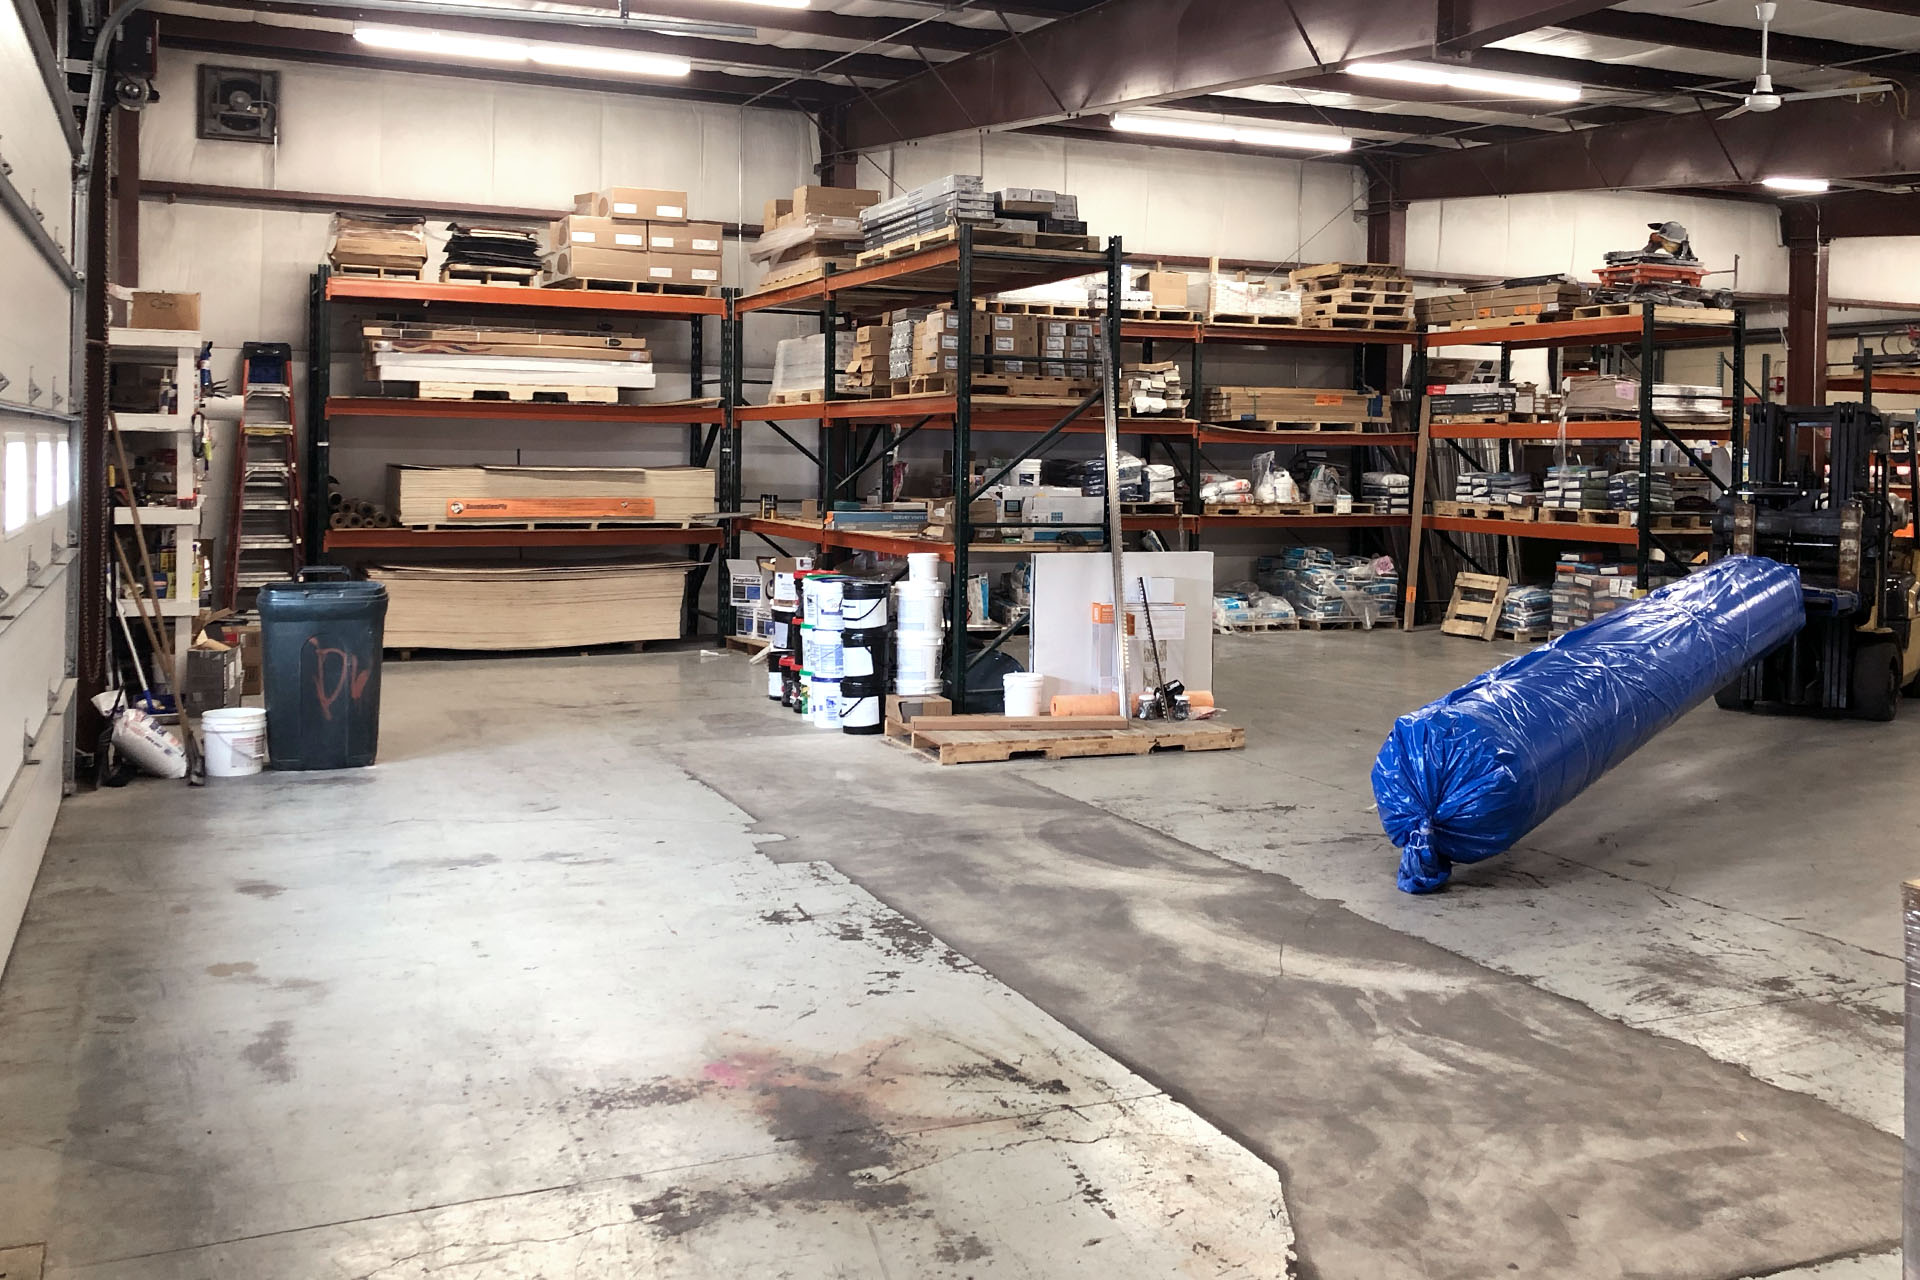 6720-2-after-warehouse-March-2019-dandsflooring.jpg